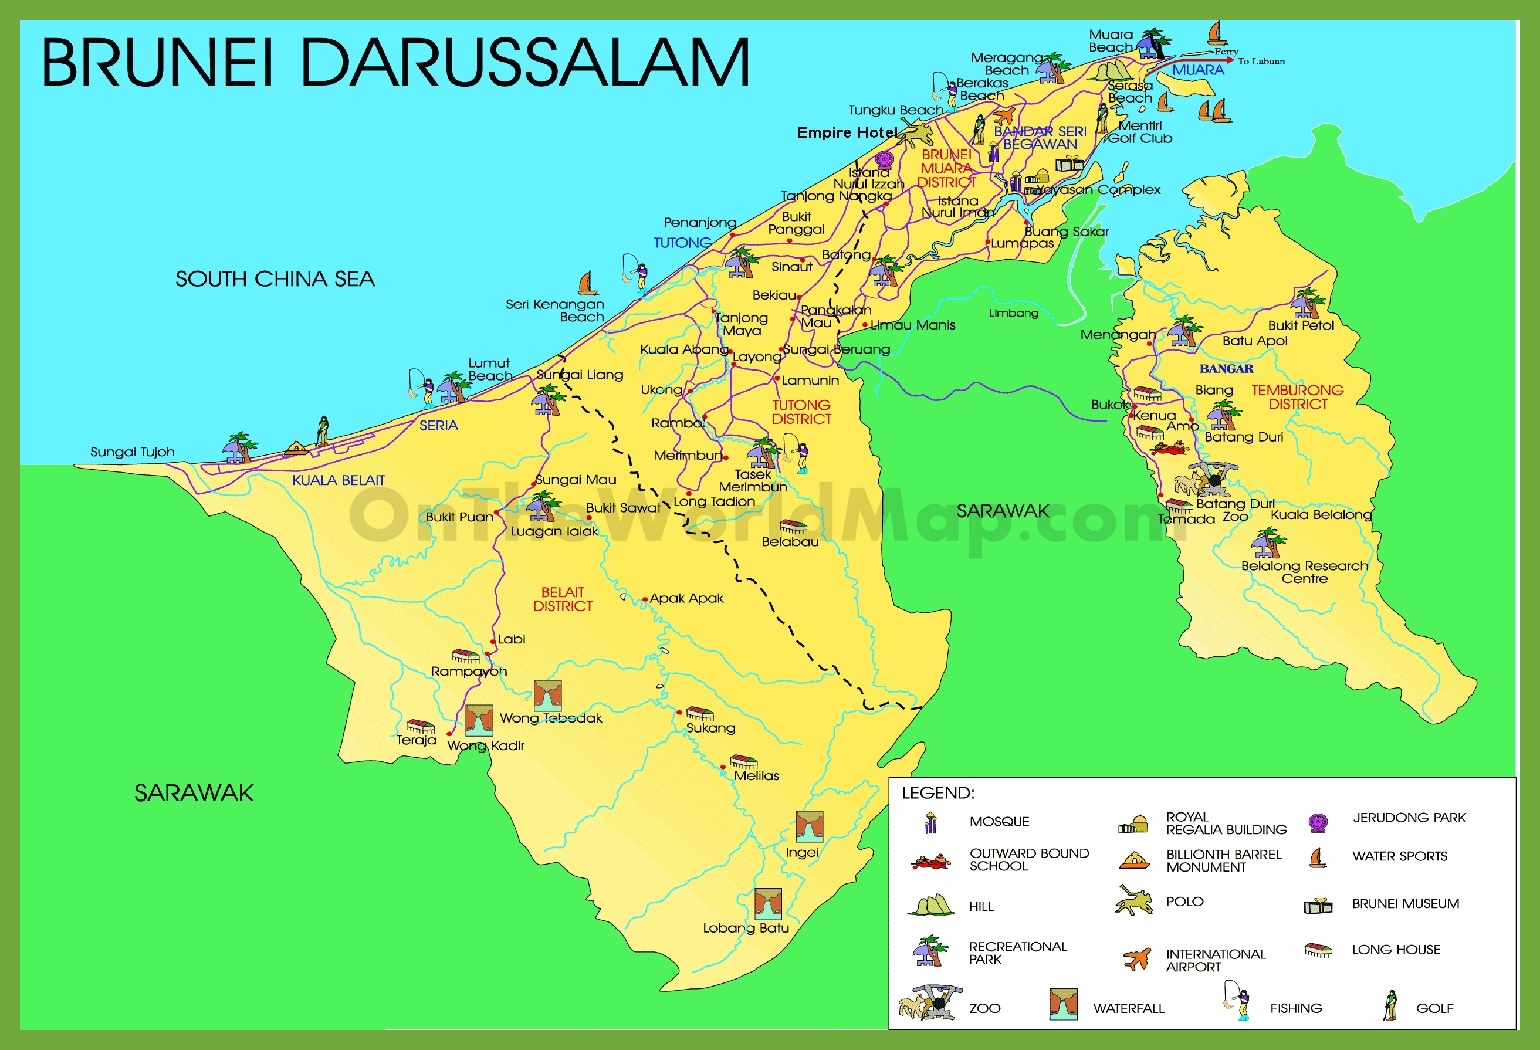 Brunei Maps Maps of Brunei Darussalam